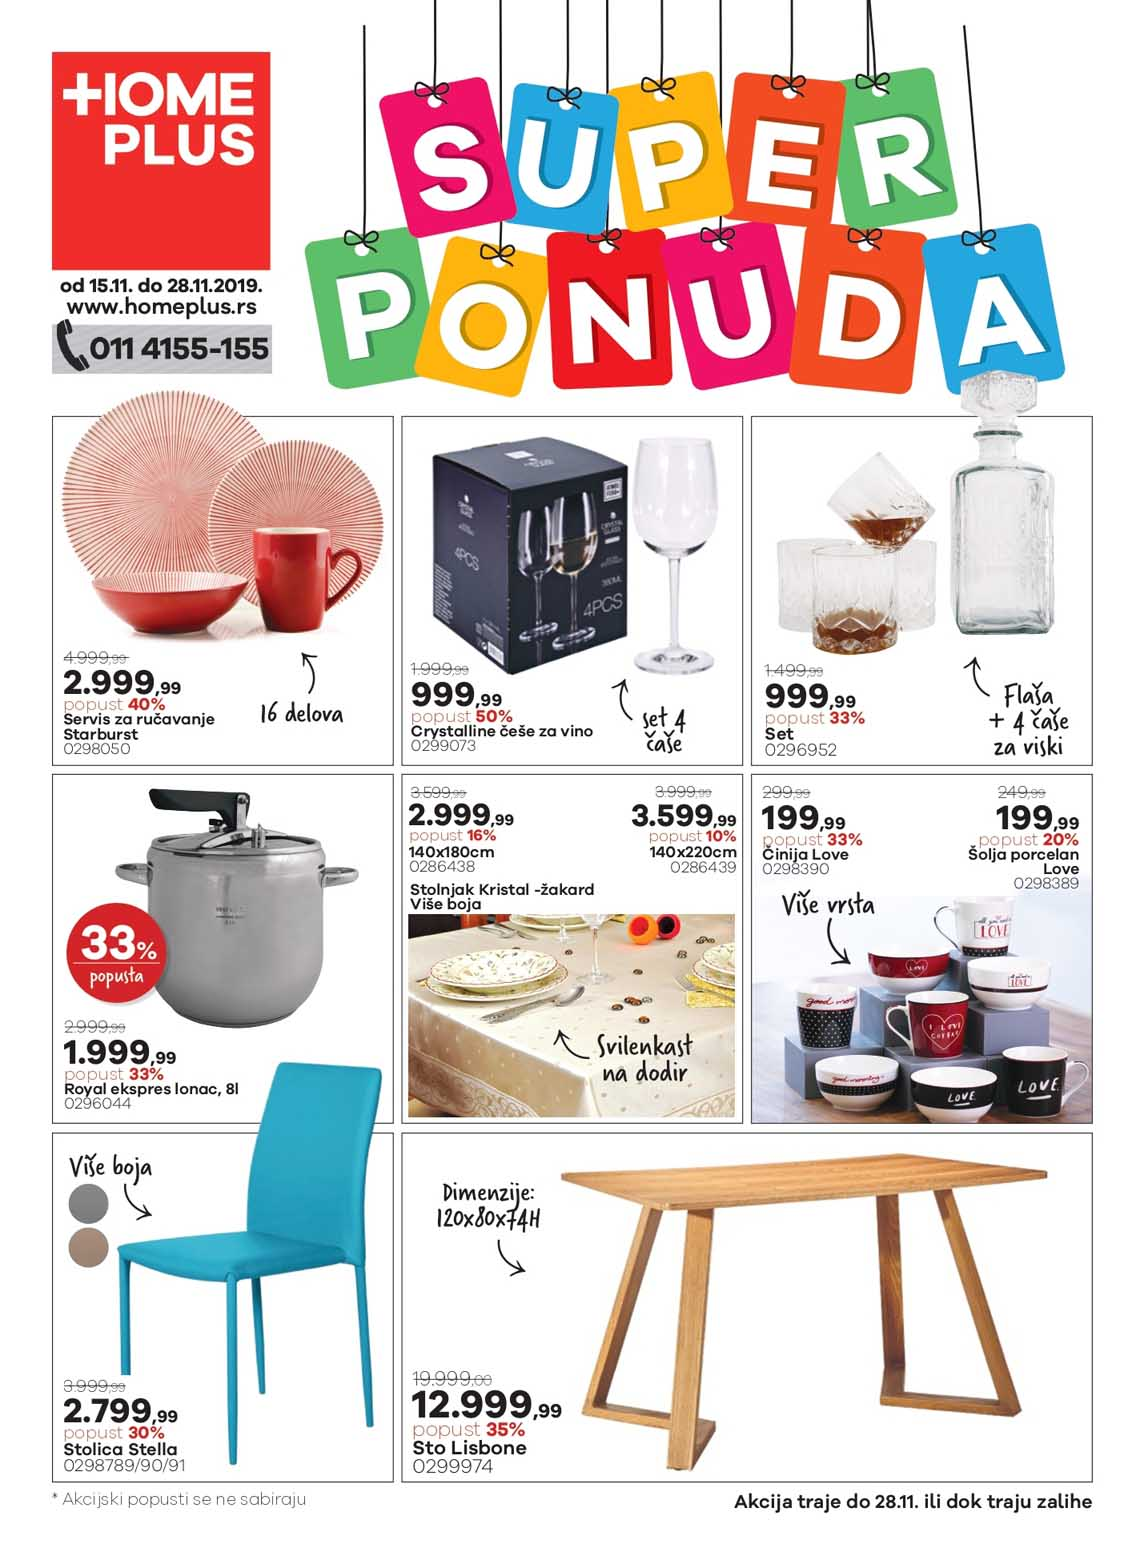 HOME PLUS AKCIJA - SUPER PONUDA!  - AKCIJA DO 28.11.2019